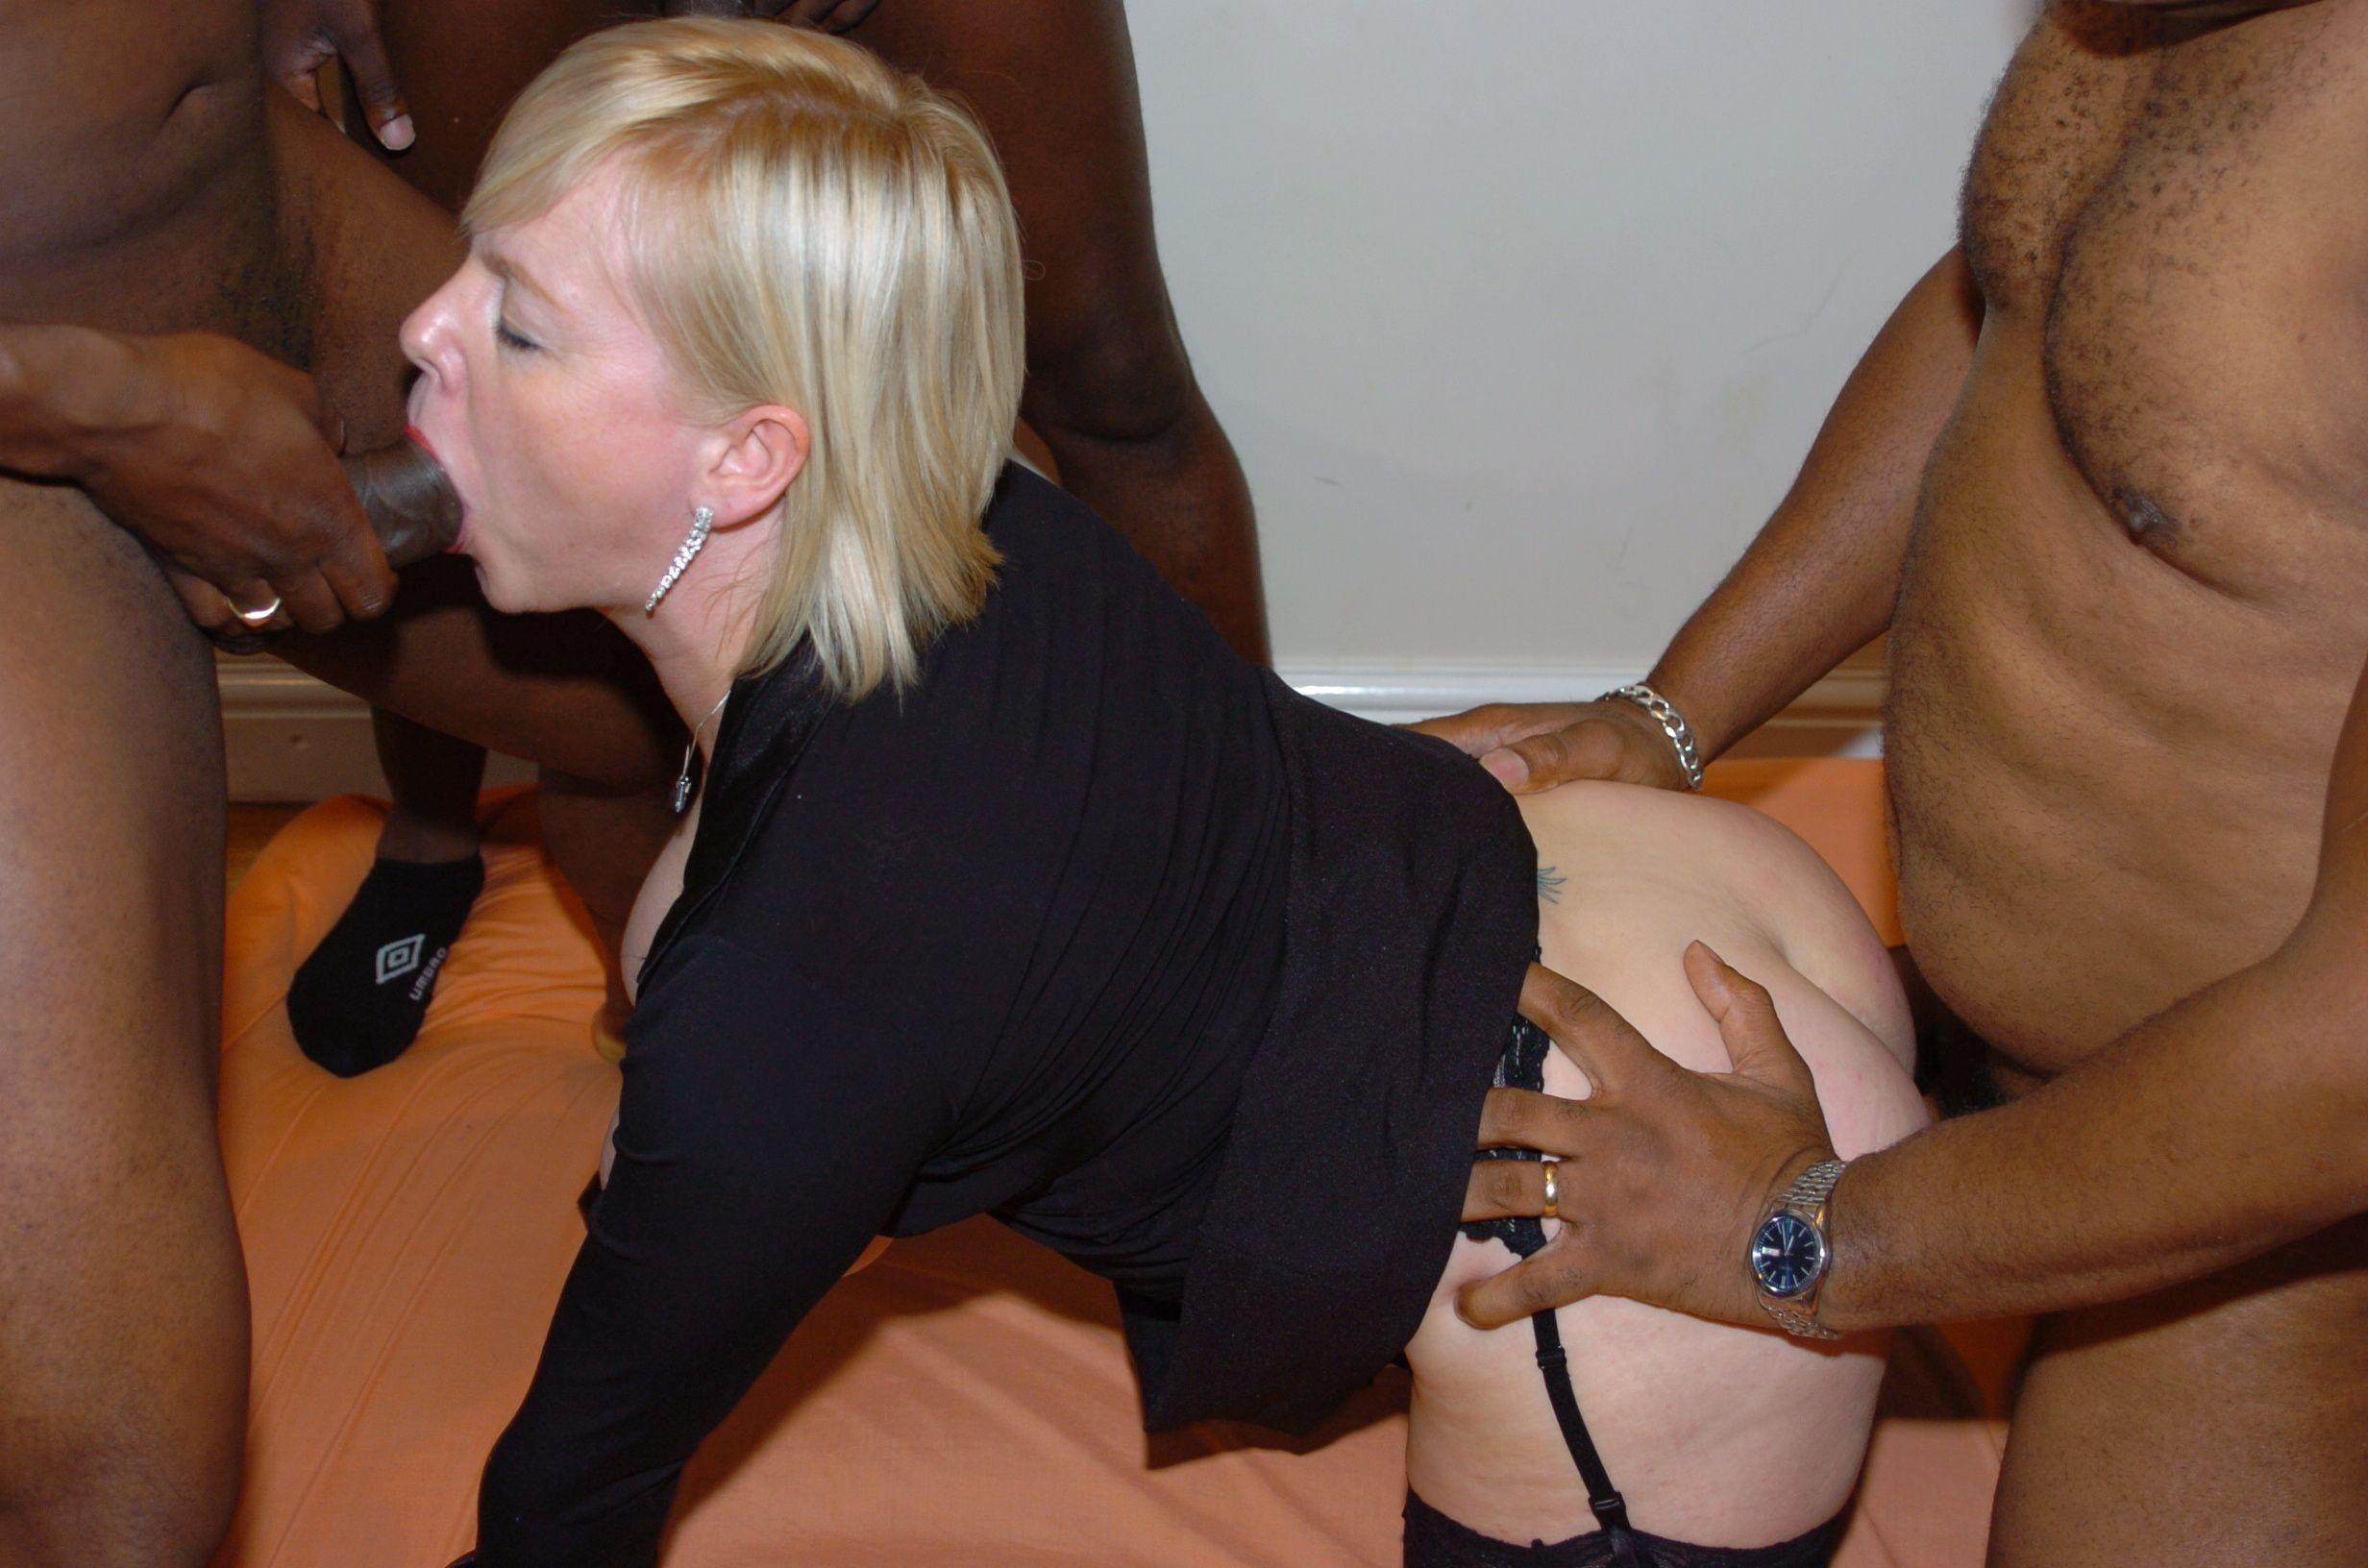 Interracial porn uk — pic 4